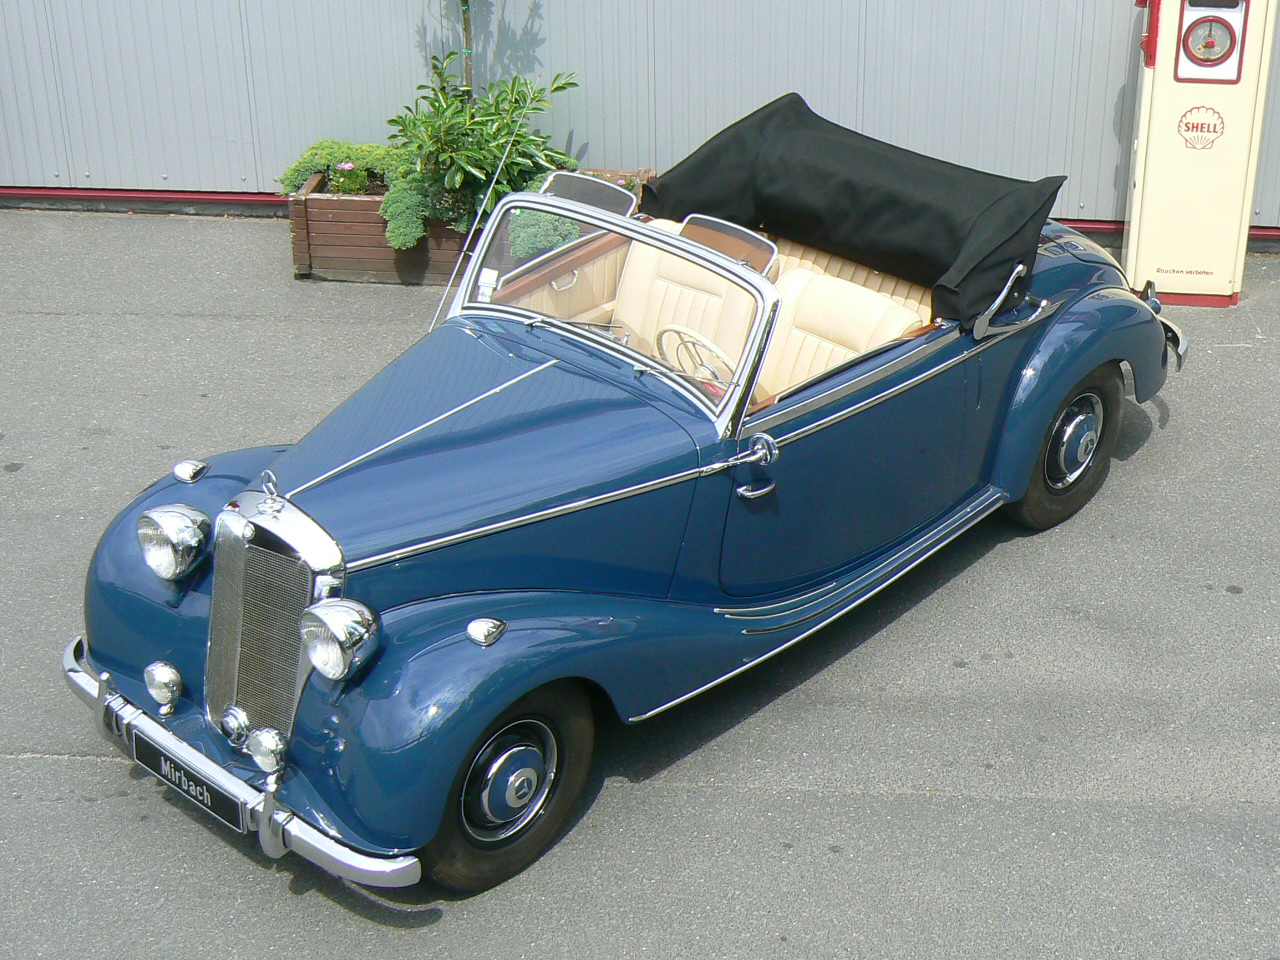 Mercedes benz 170 s cabriolet photos photogallery with 5 pics carsbase com